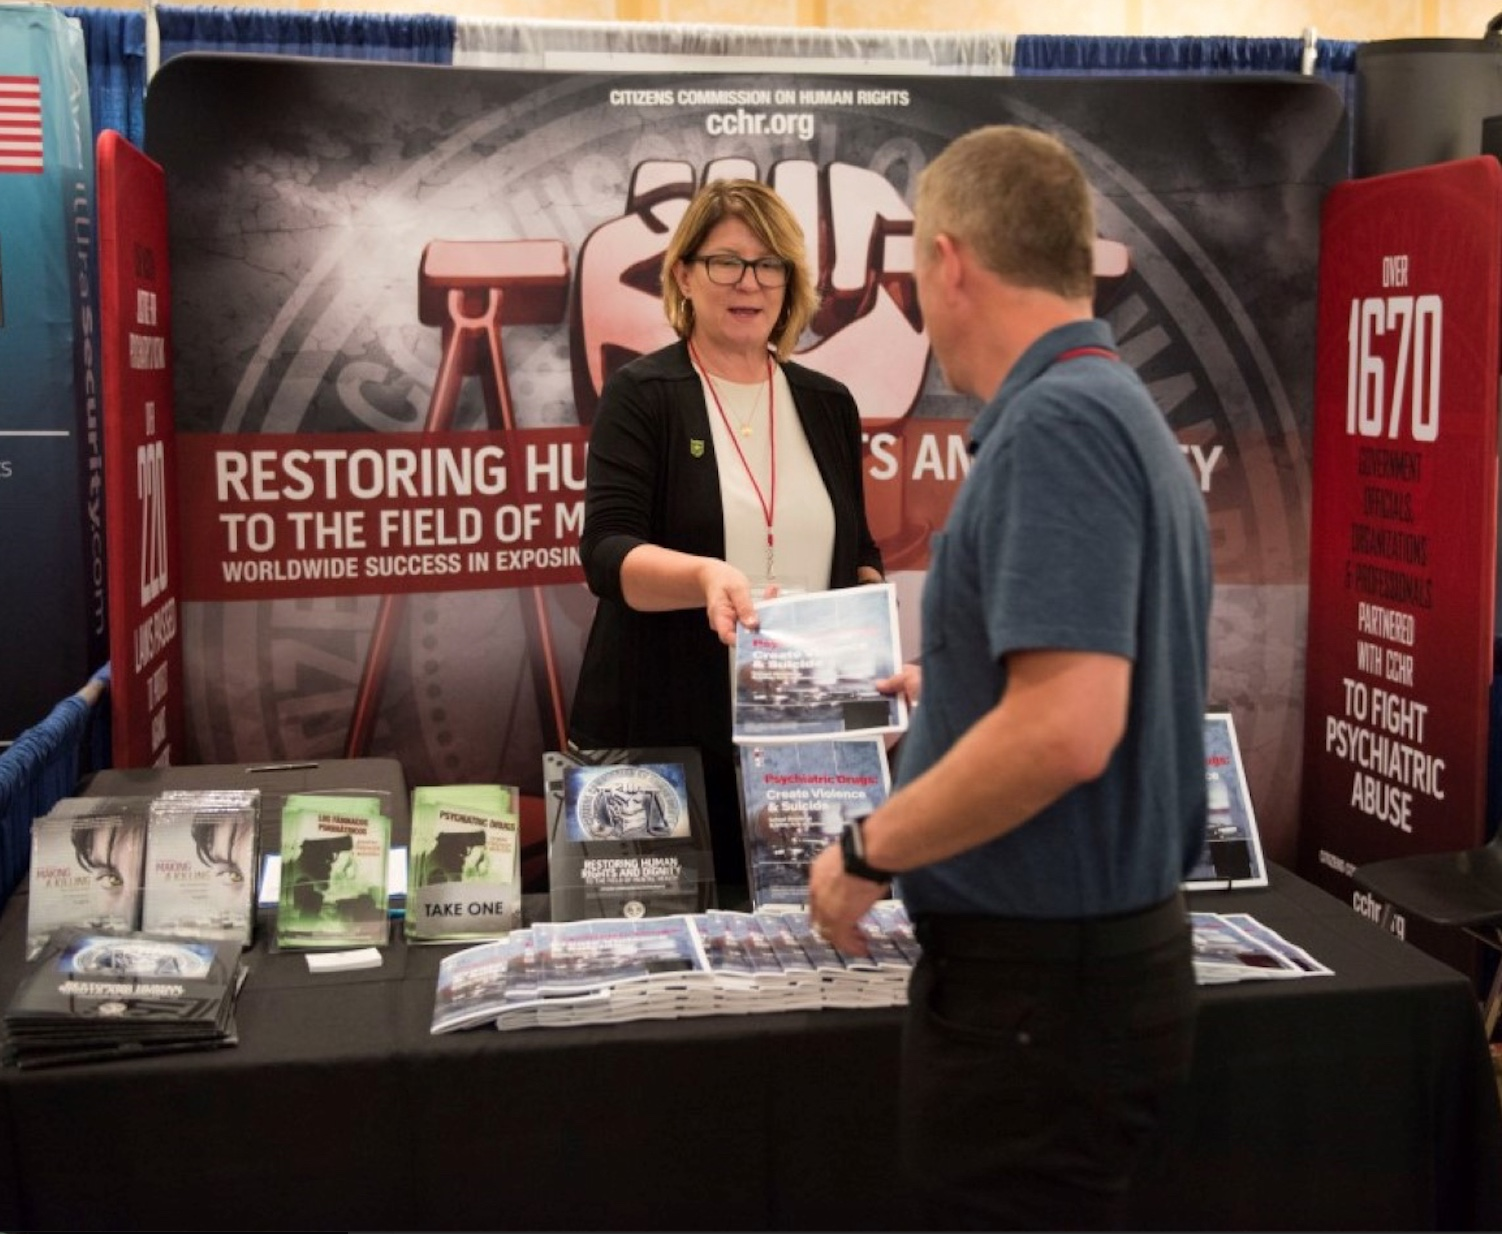 2018 National School Safety Conference